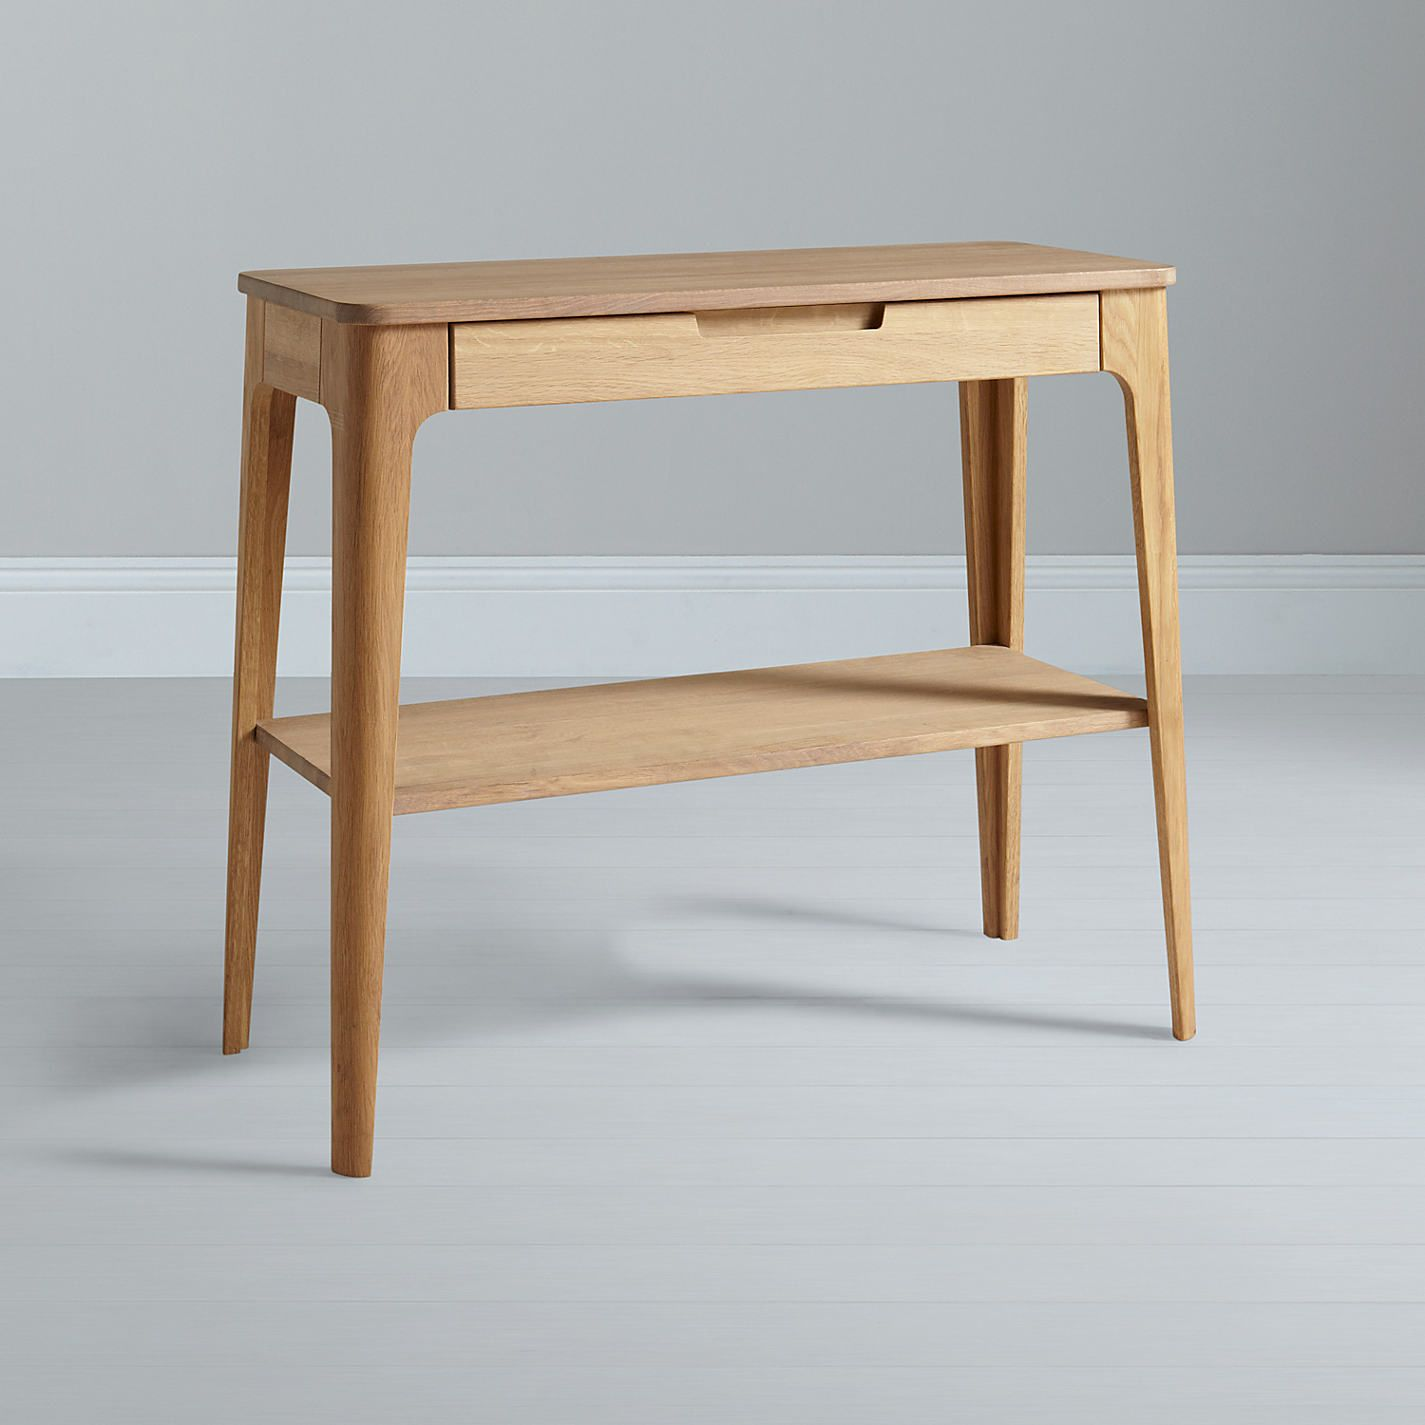 Ebbe gehl for john lewis mira console table console tables john buy ebbe gehl for john lewis mira console table john lewis geotapseo Choice Image